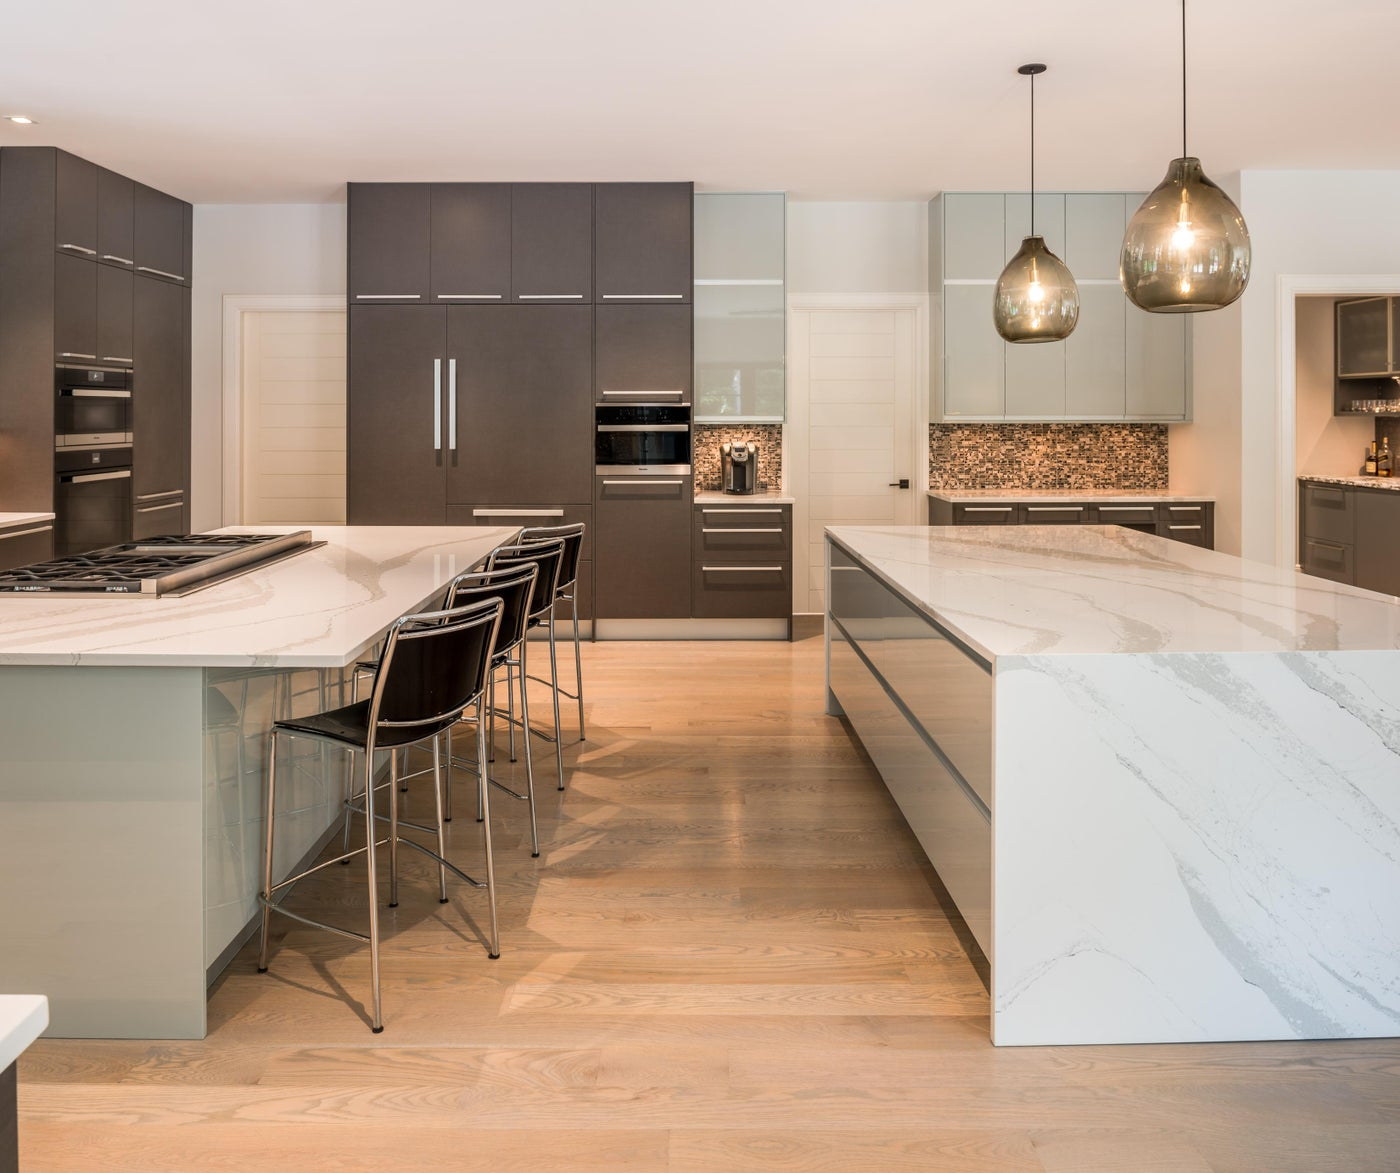 Transitional Residence Contemporary Kitchen with two islands - Chester County, PA